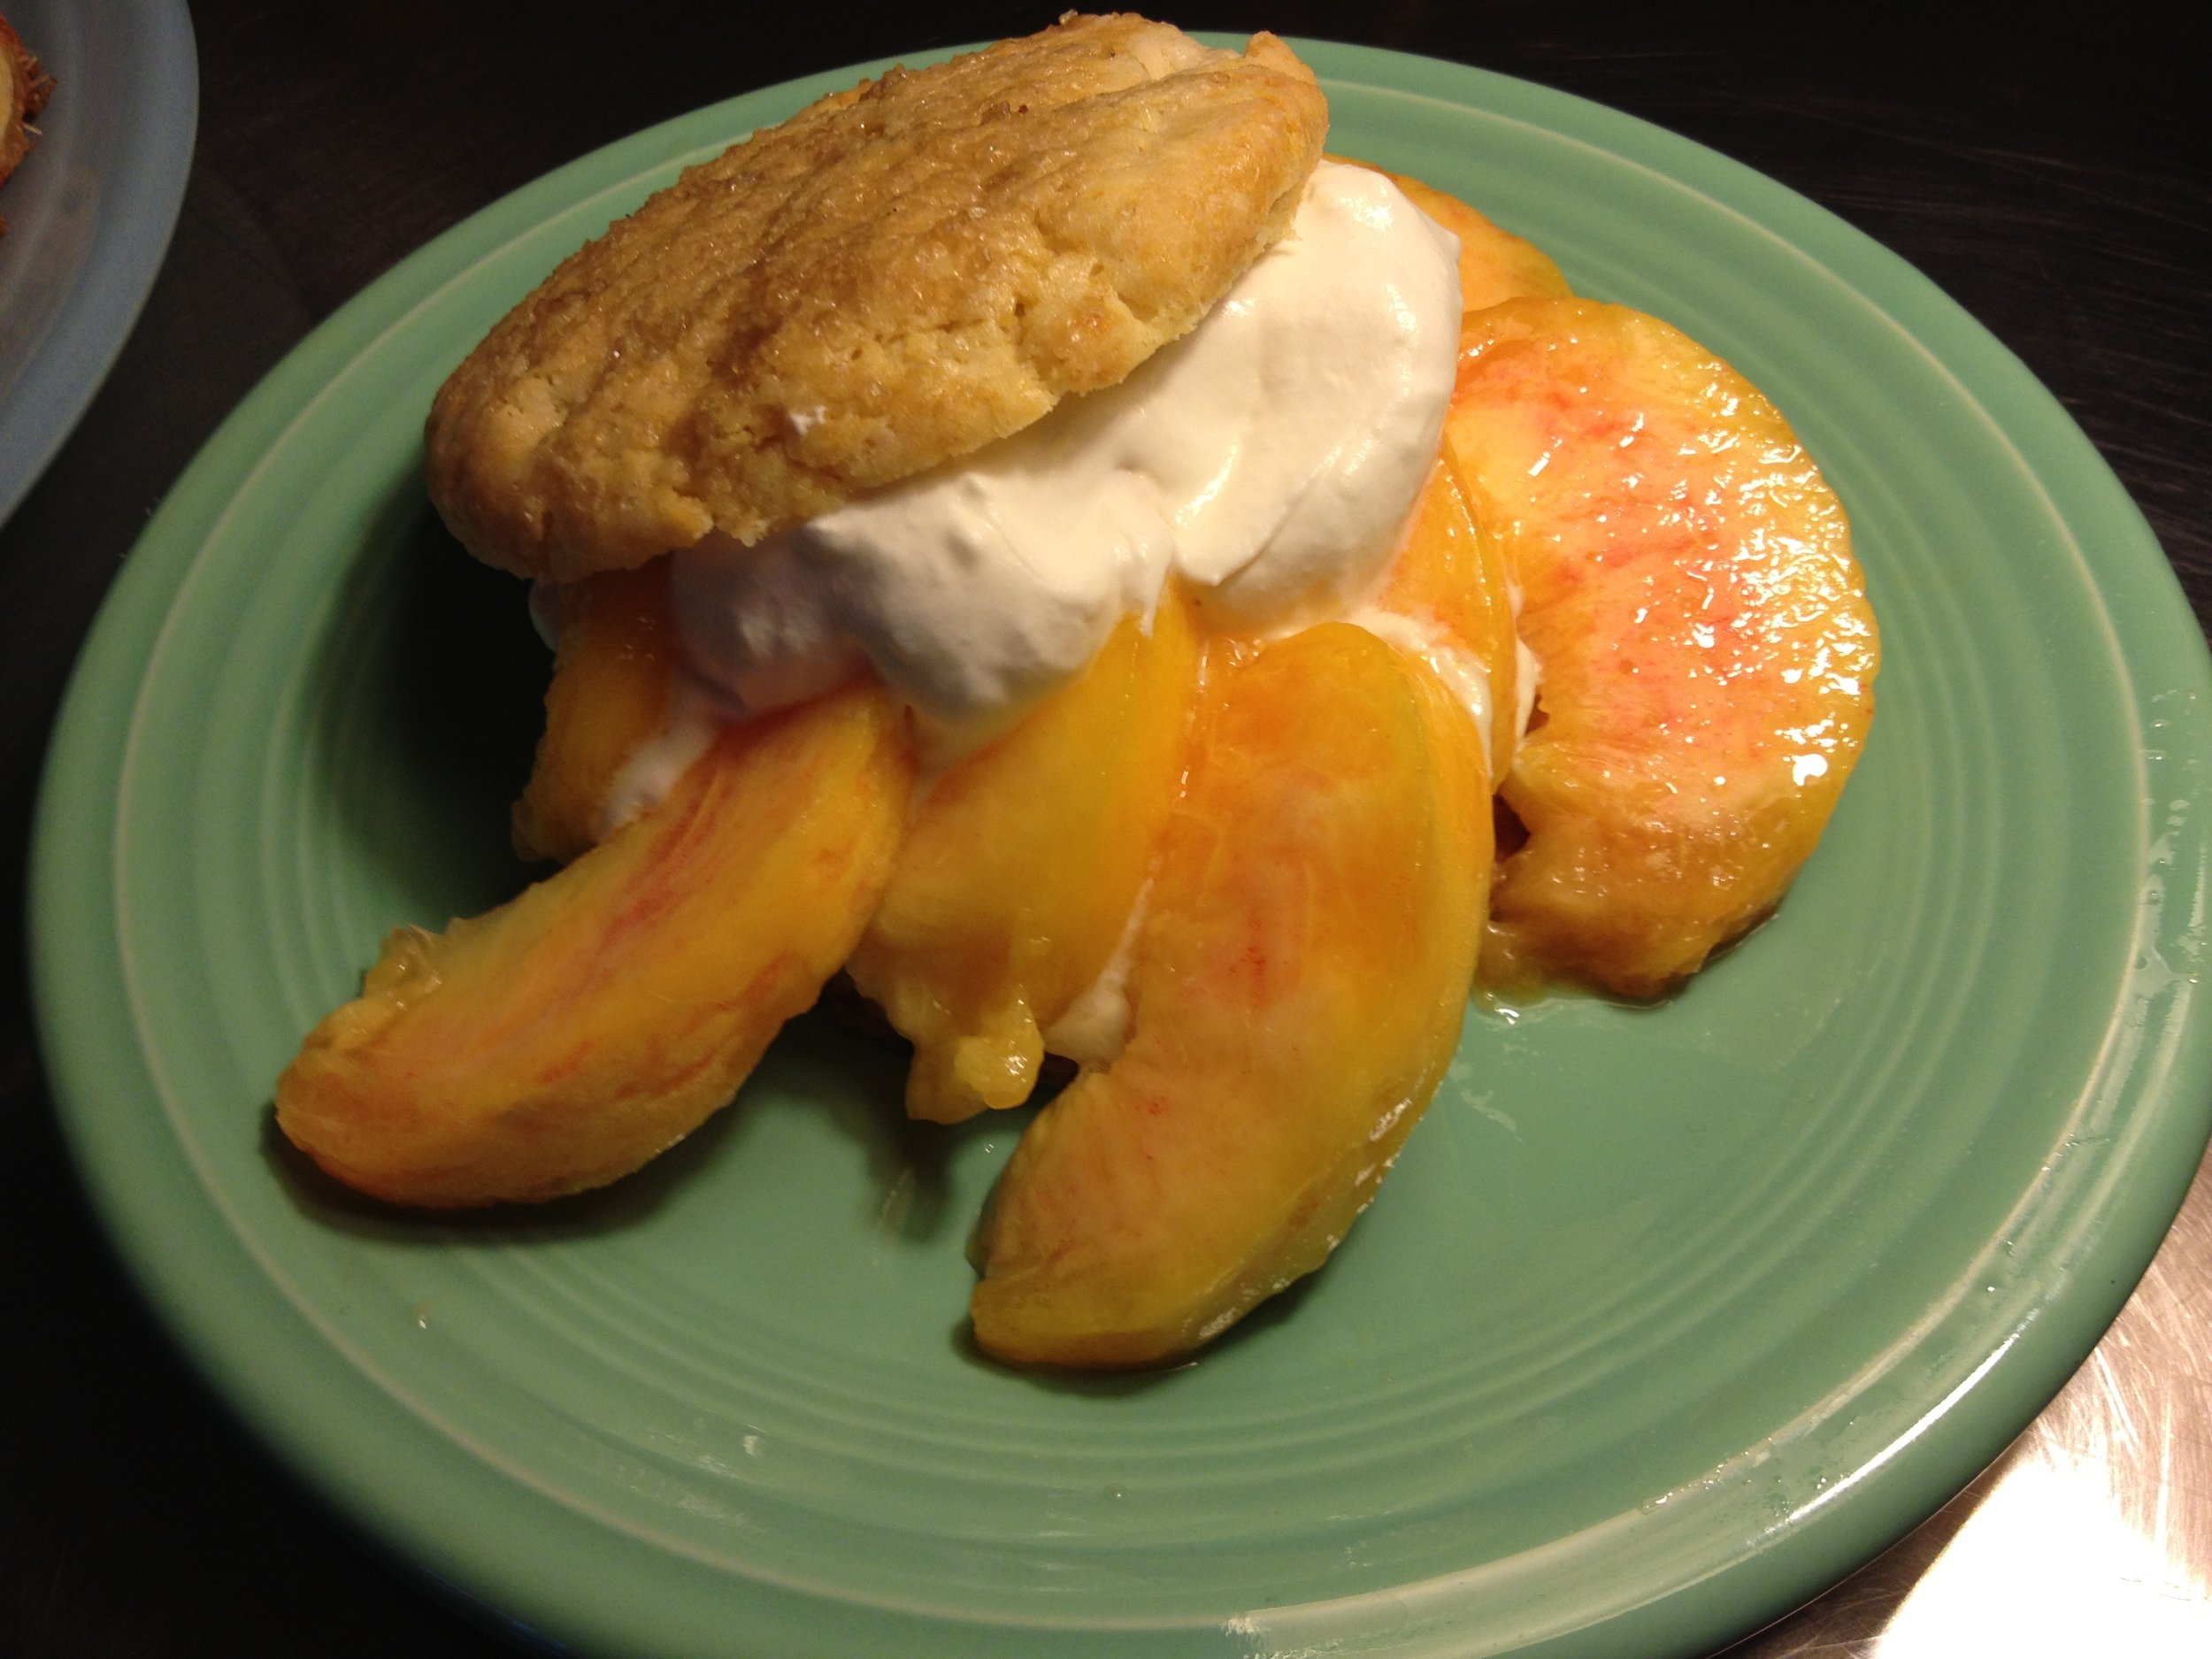 Peach with Gingered Shortcakes and Mascarpone Whipped Cream